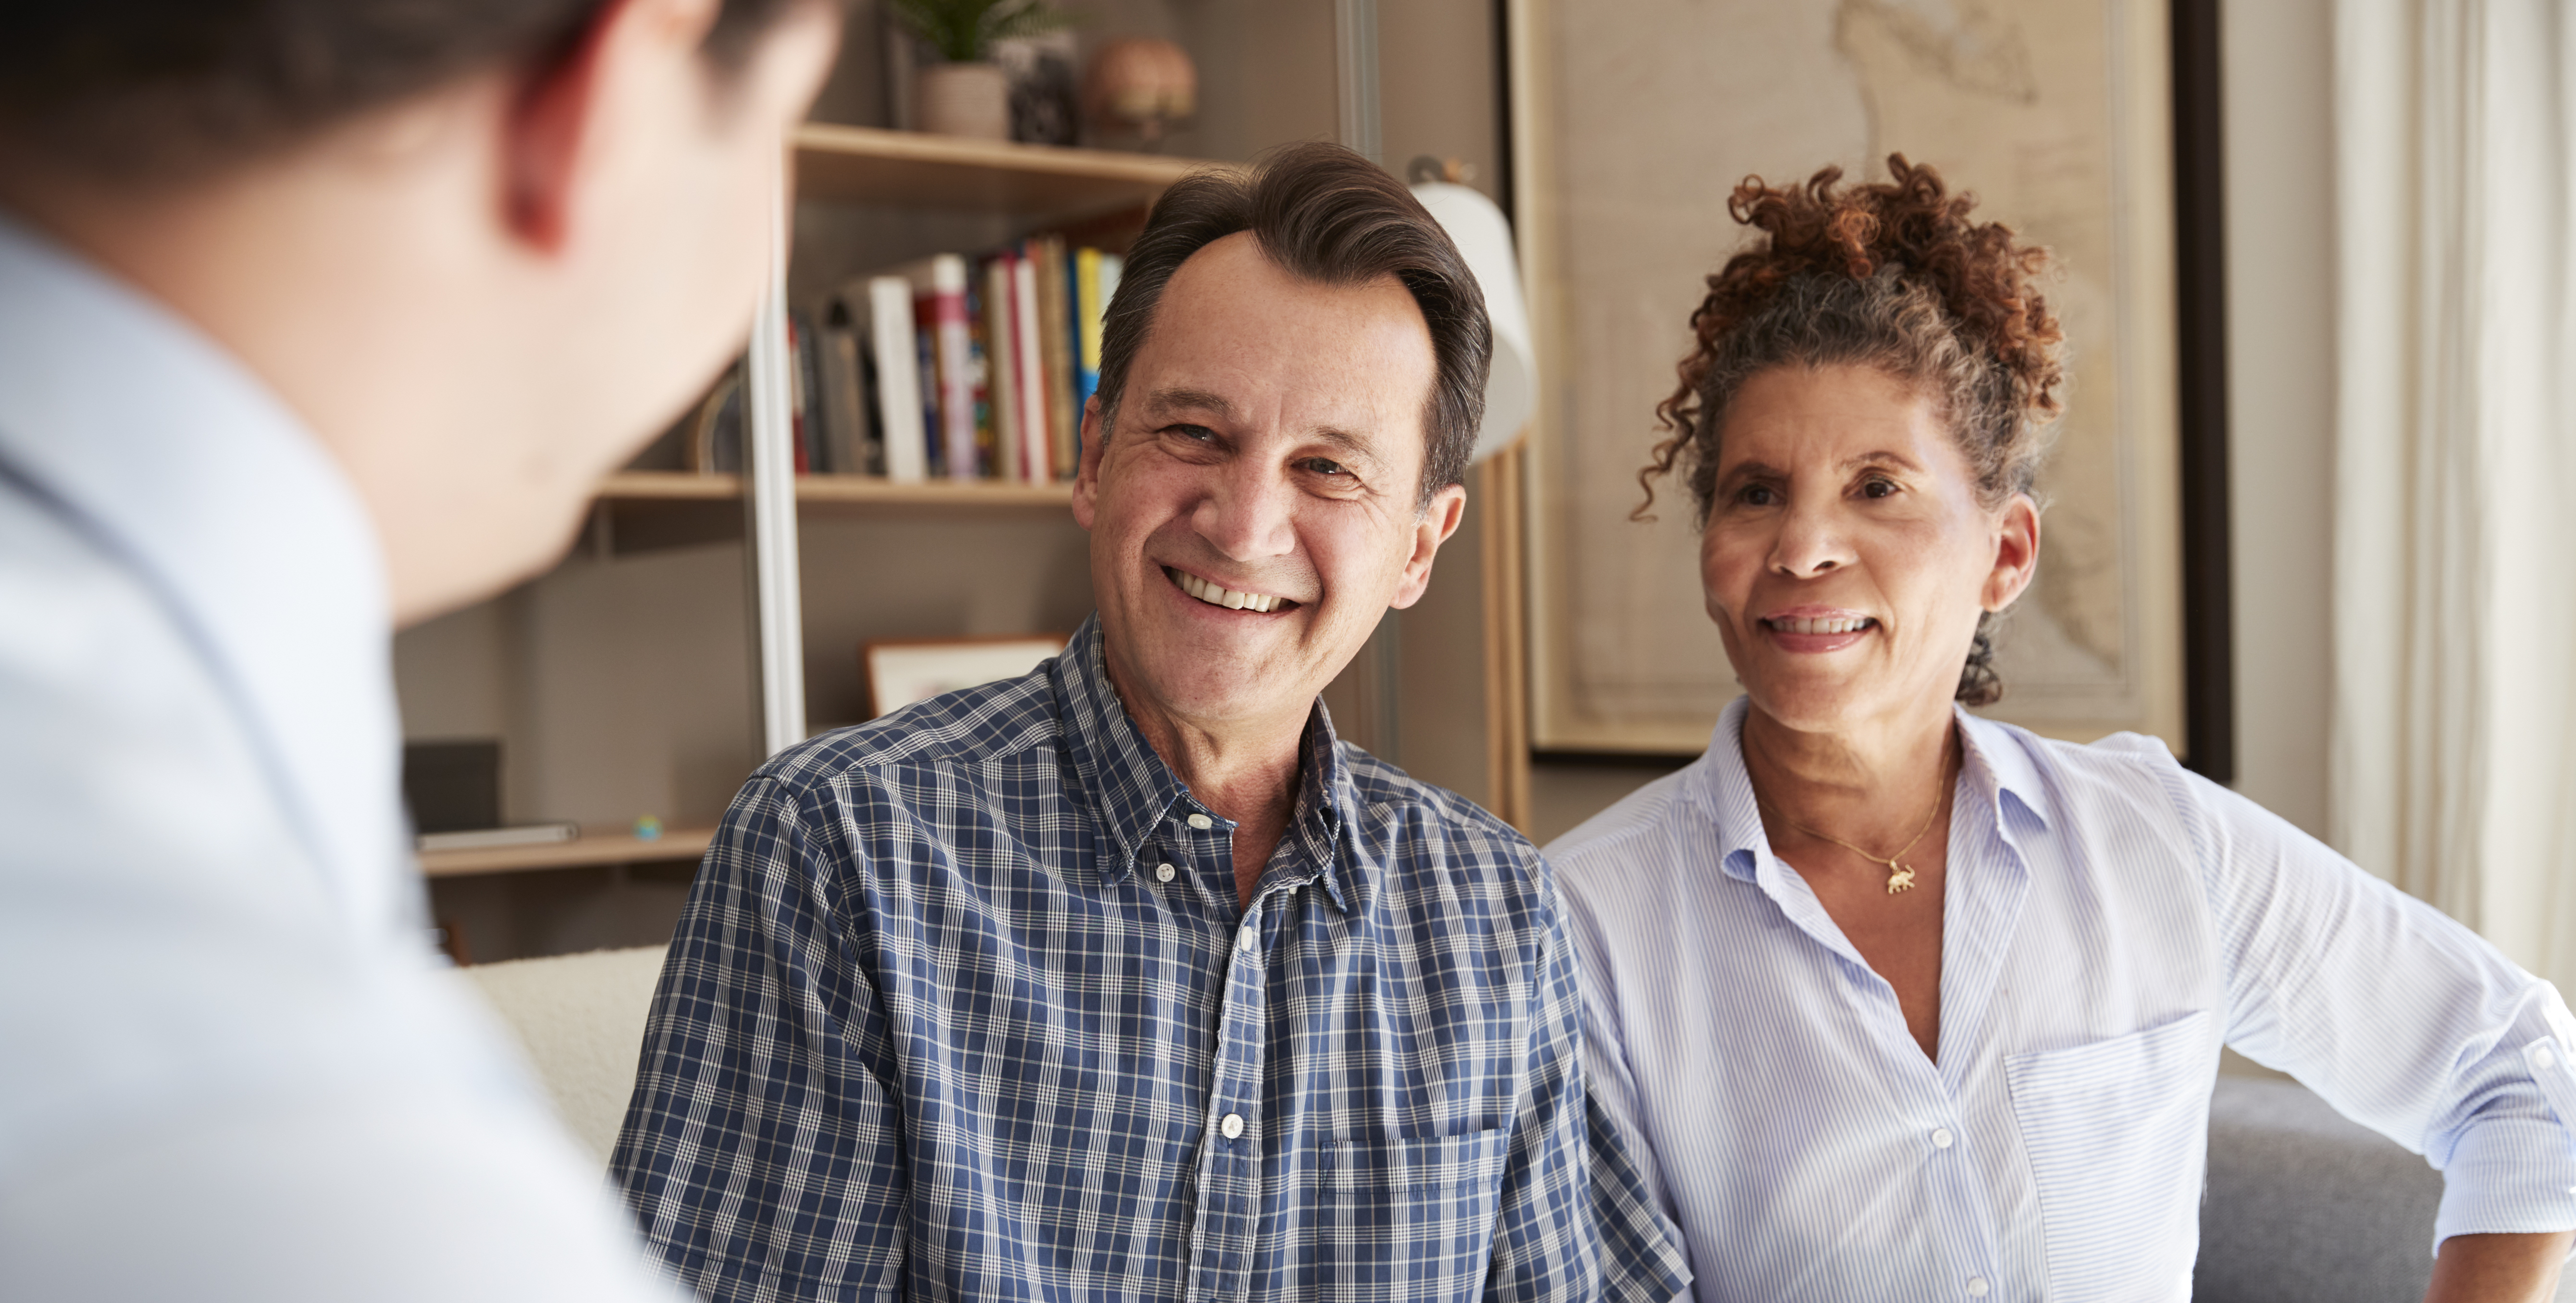 Annuities - an outdated concept or a core planning tool?